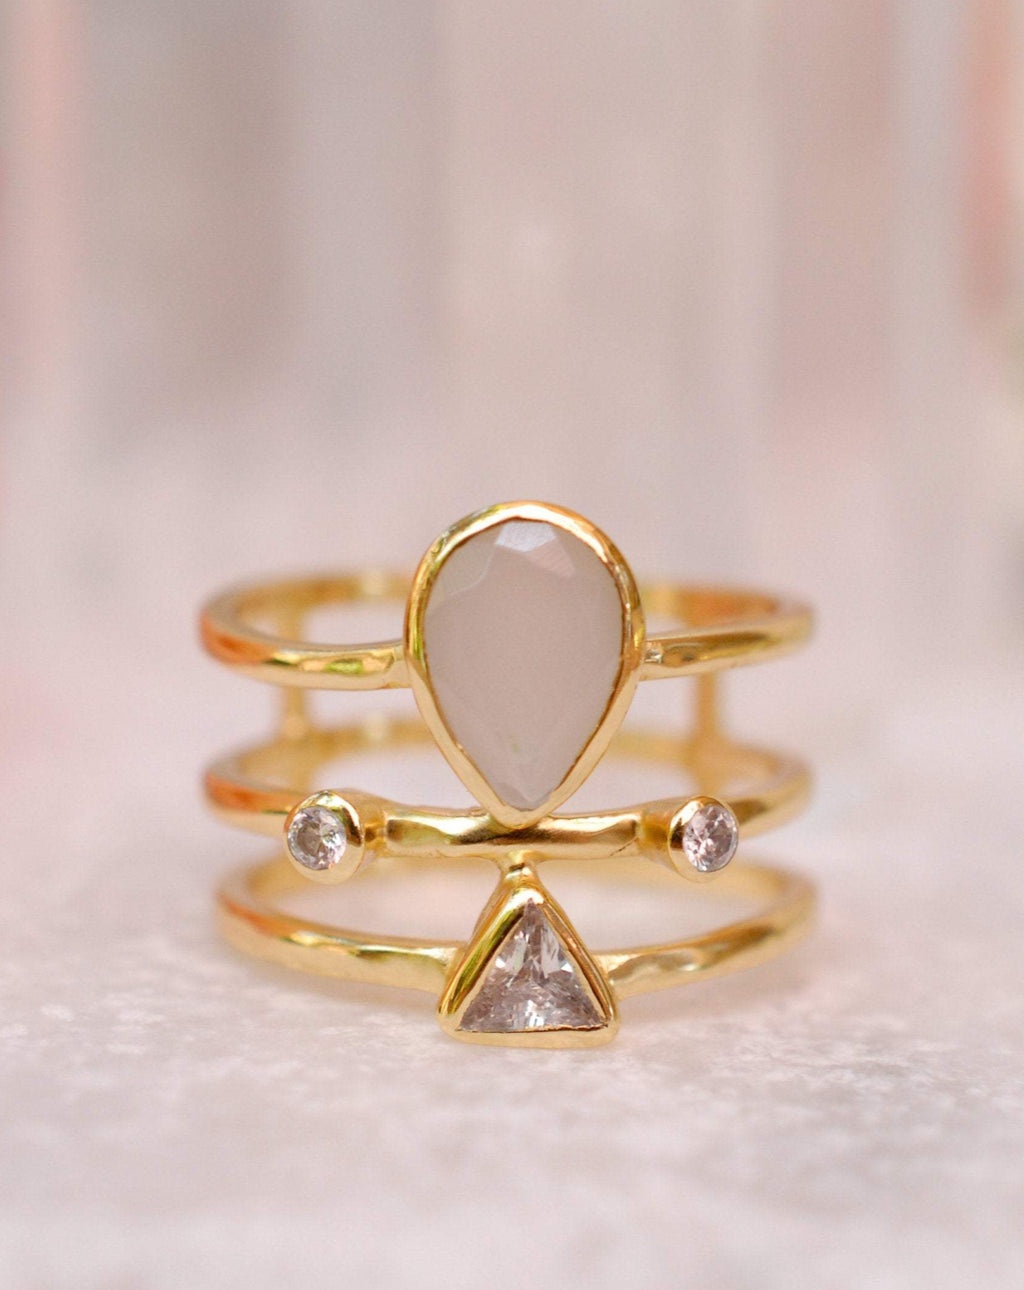 Moonstone & White Topaz Ring * Gold Plated Ring * Statement Ring *Gemstone Ring * Rainbow * Bridal Ring *Wedding Ring  * BJR118